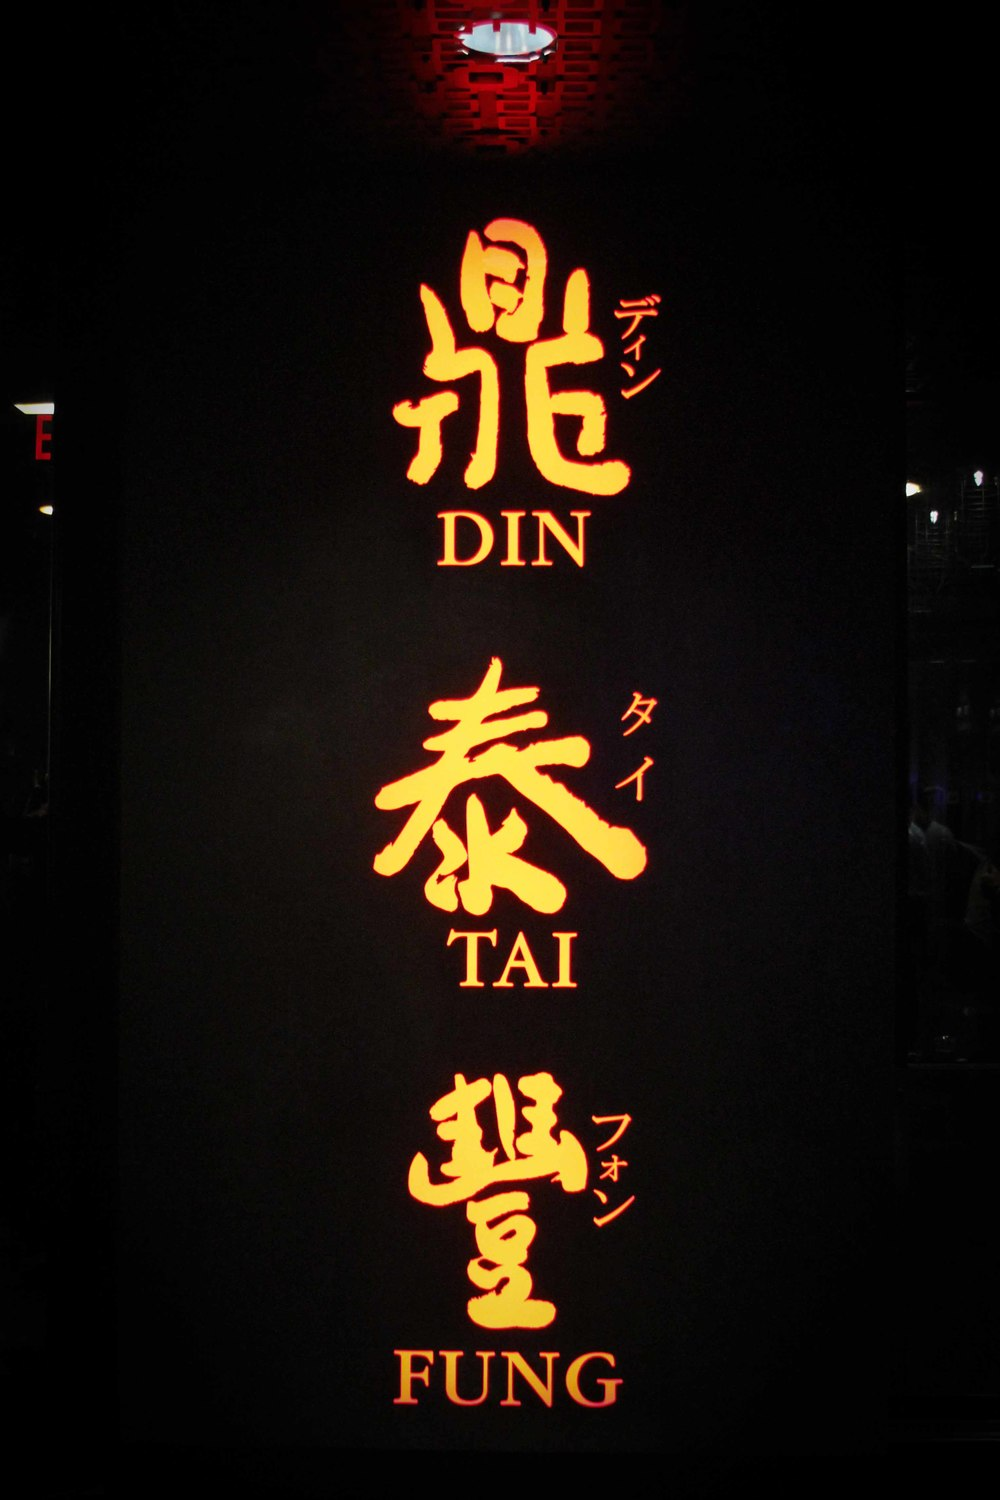 The famous Din Tai Fung in Seattle